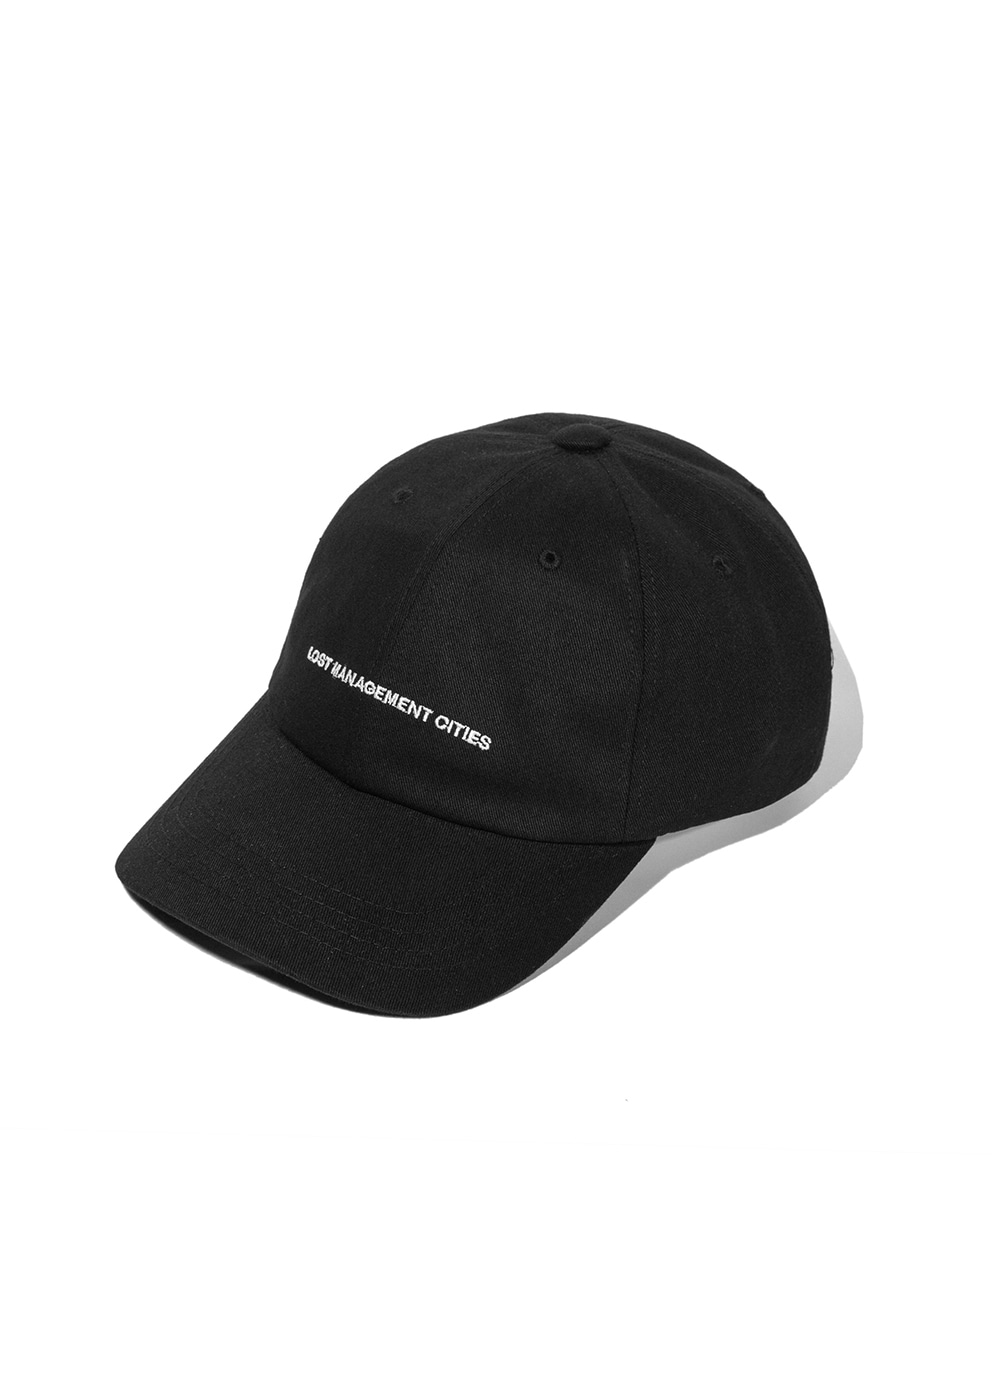 LMC CAPITAL LOGO 6 PANEL CAP black